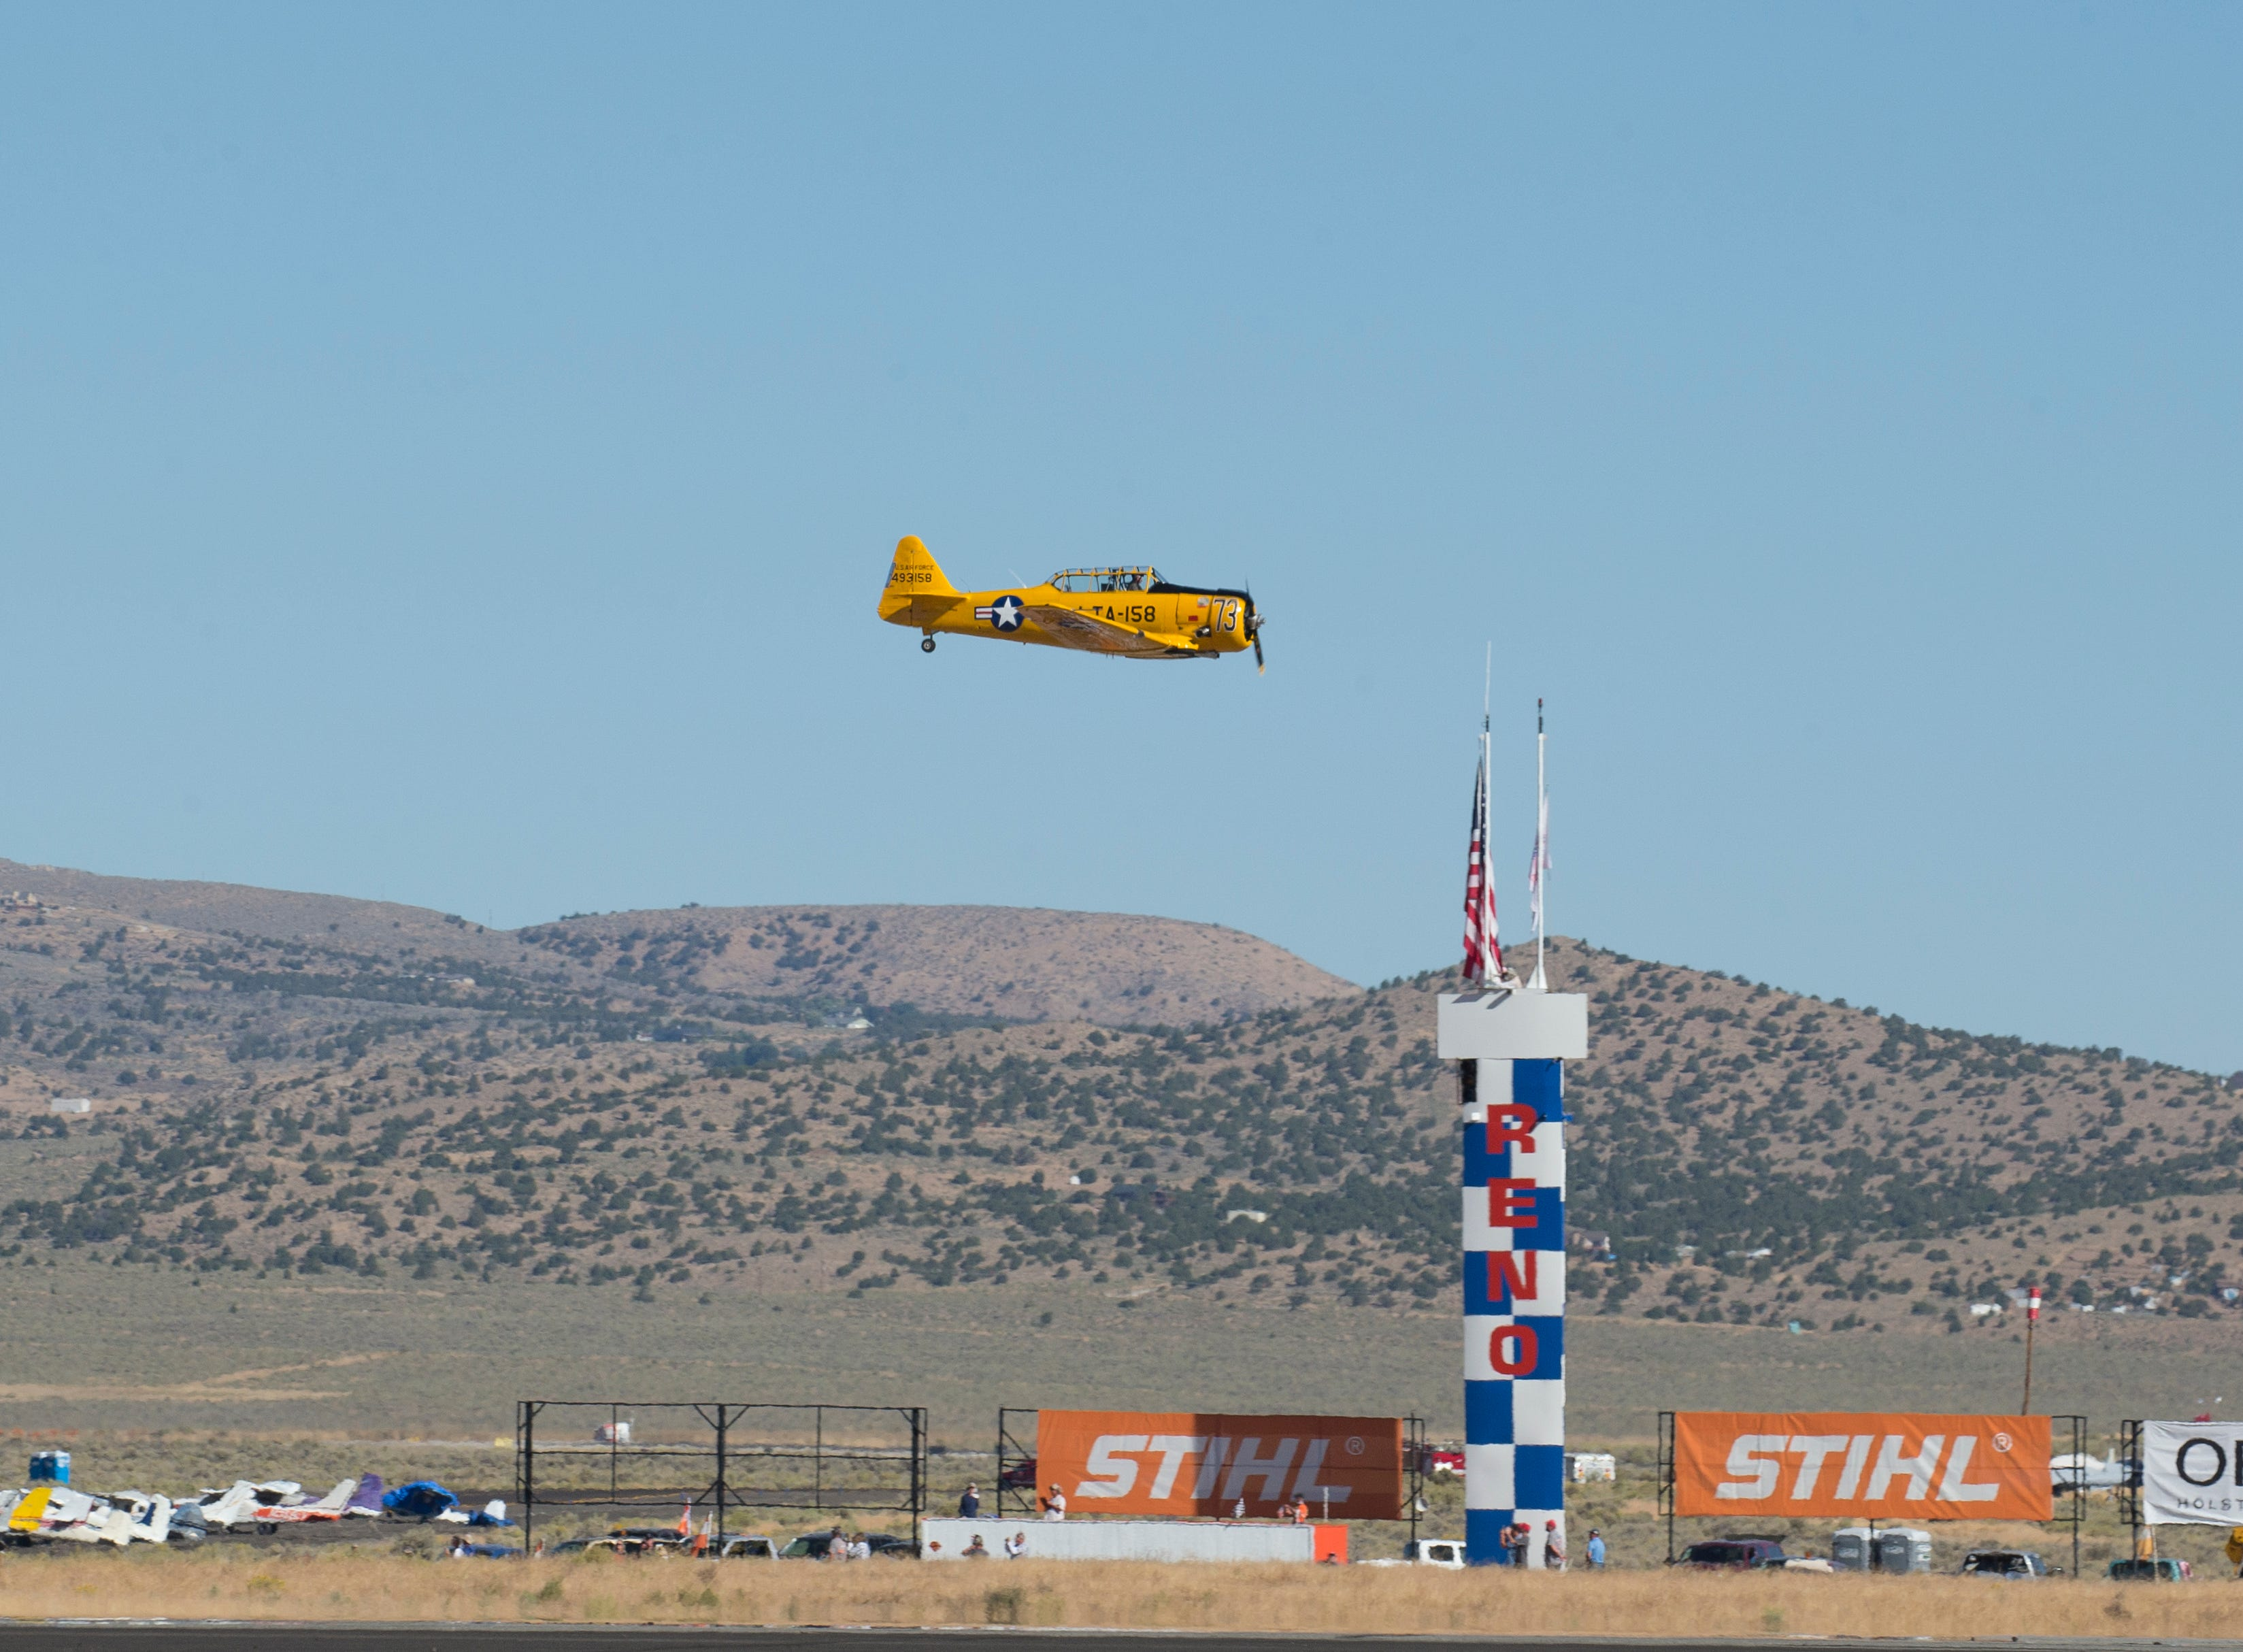 Ralph Rina from Mesa, AZ flying Miss Humboldt Hummy won the T-6 Bronze race during the Reno National Championship Air Races on Sunday, Sept. 16, 2018.